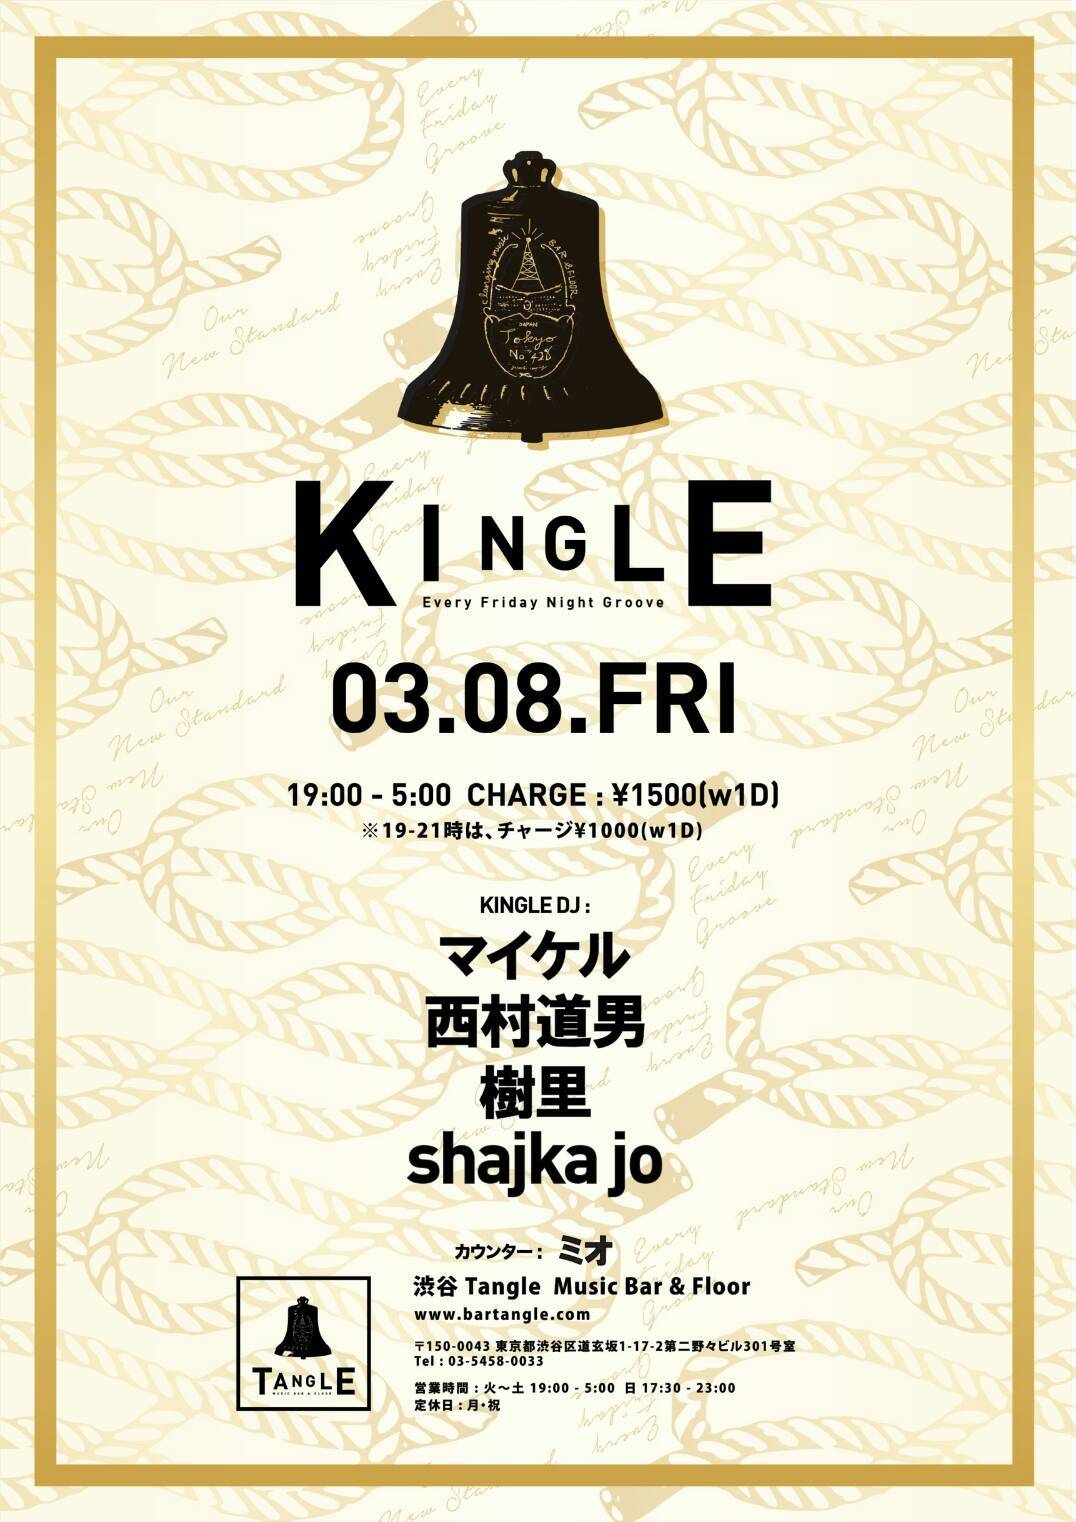 3/8 (FRI) 「KINGLE」@渋谷 Tangle_e0153779_05594730.jpeg